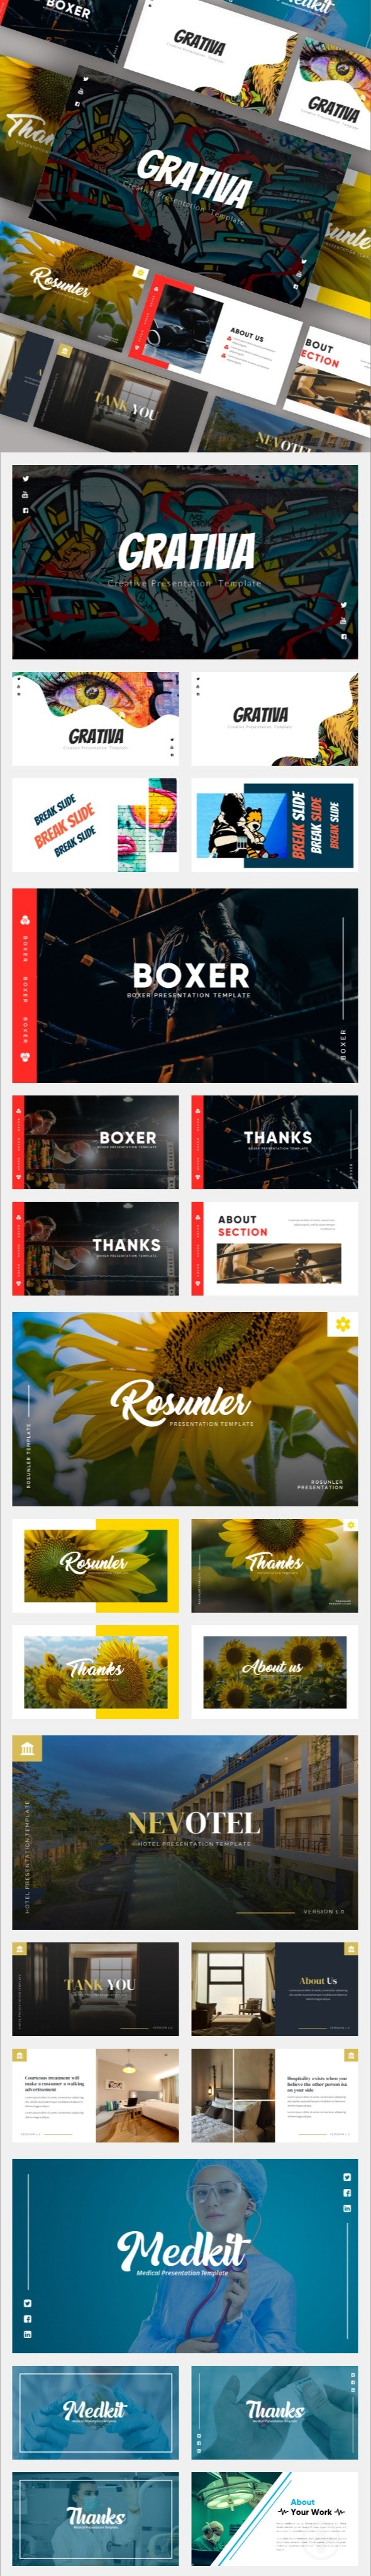 Multipurpose Google Slides BIG Bundle Vol. 3 - Google Slides Presentation Templates